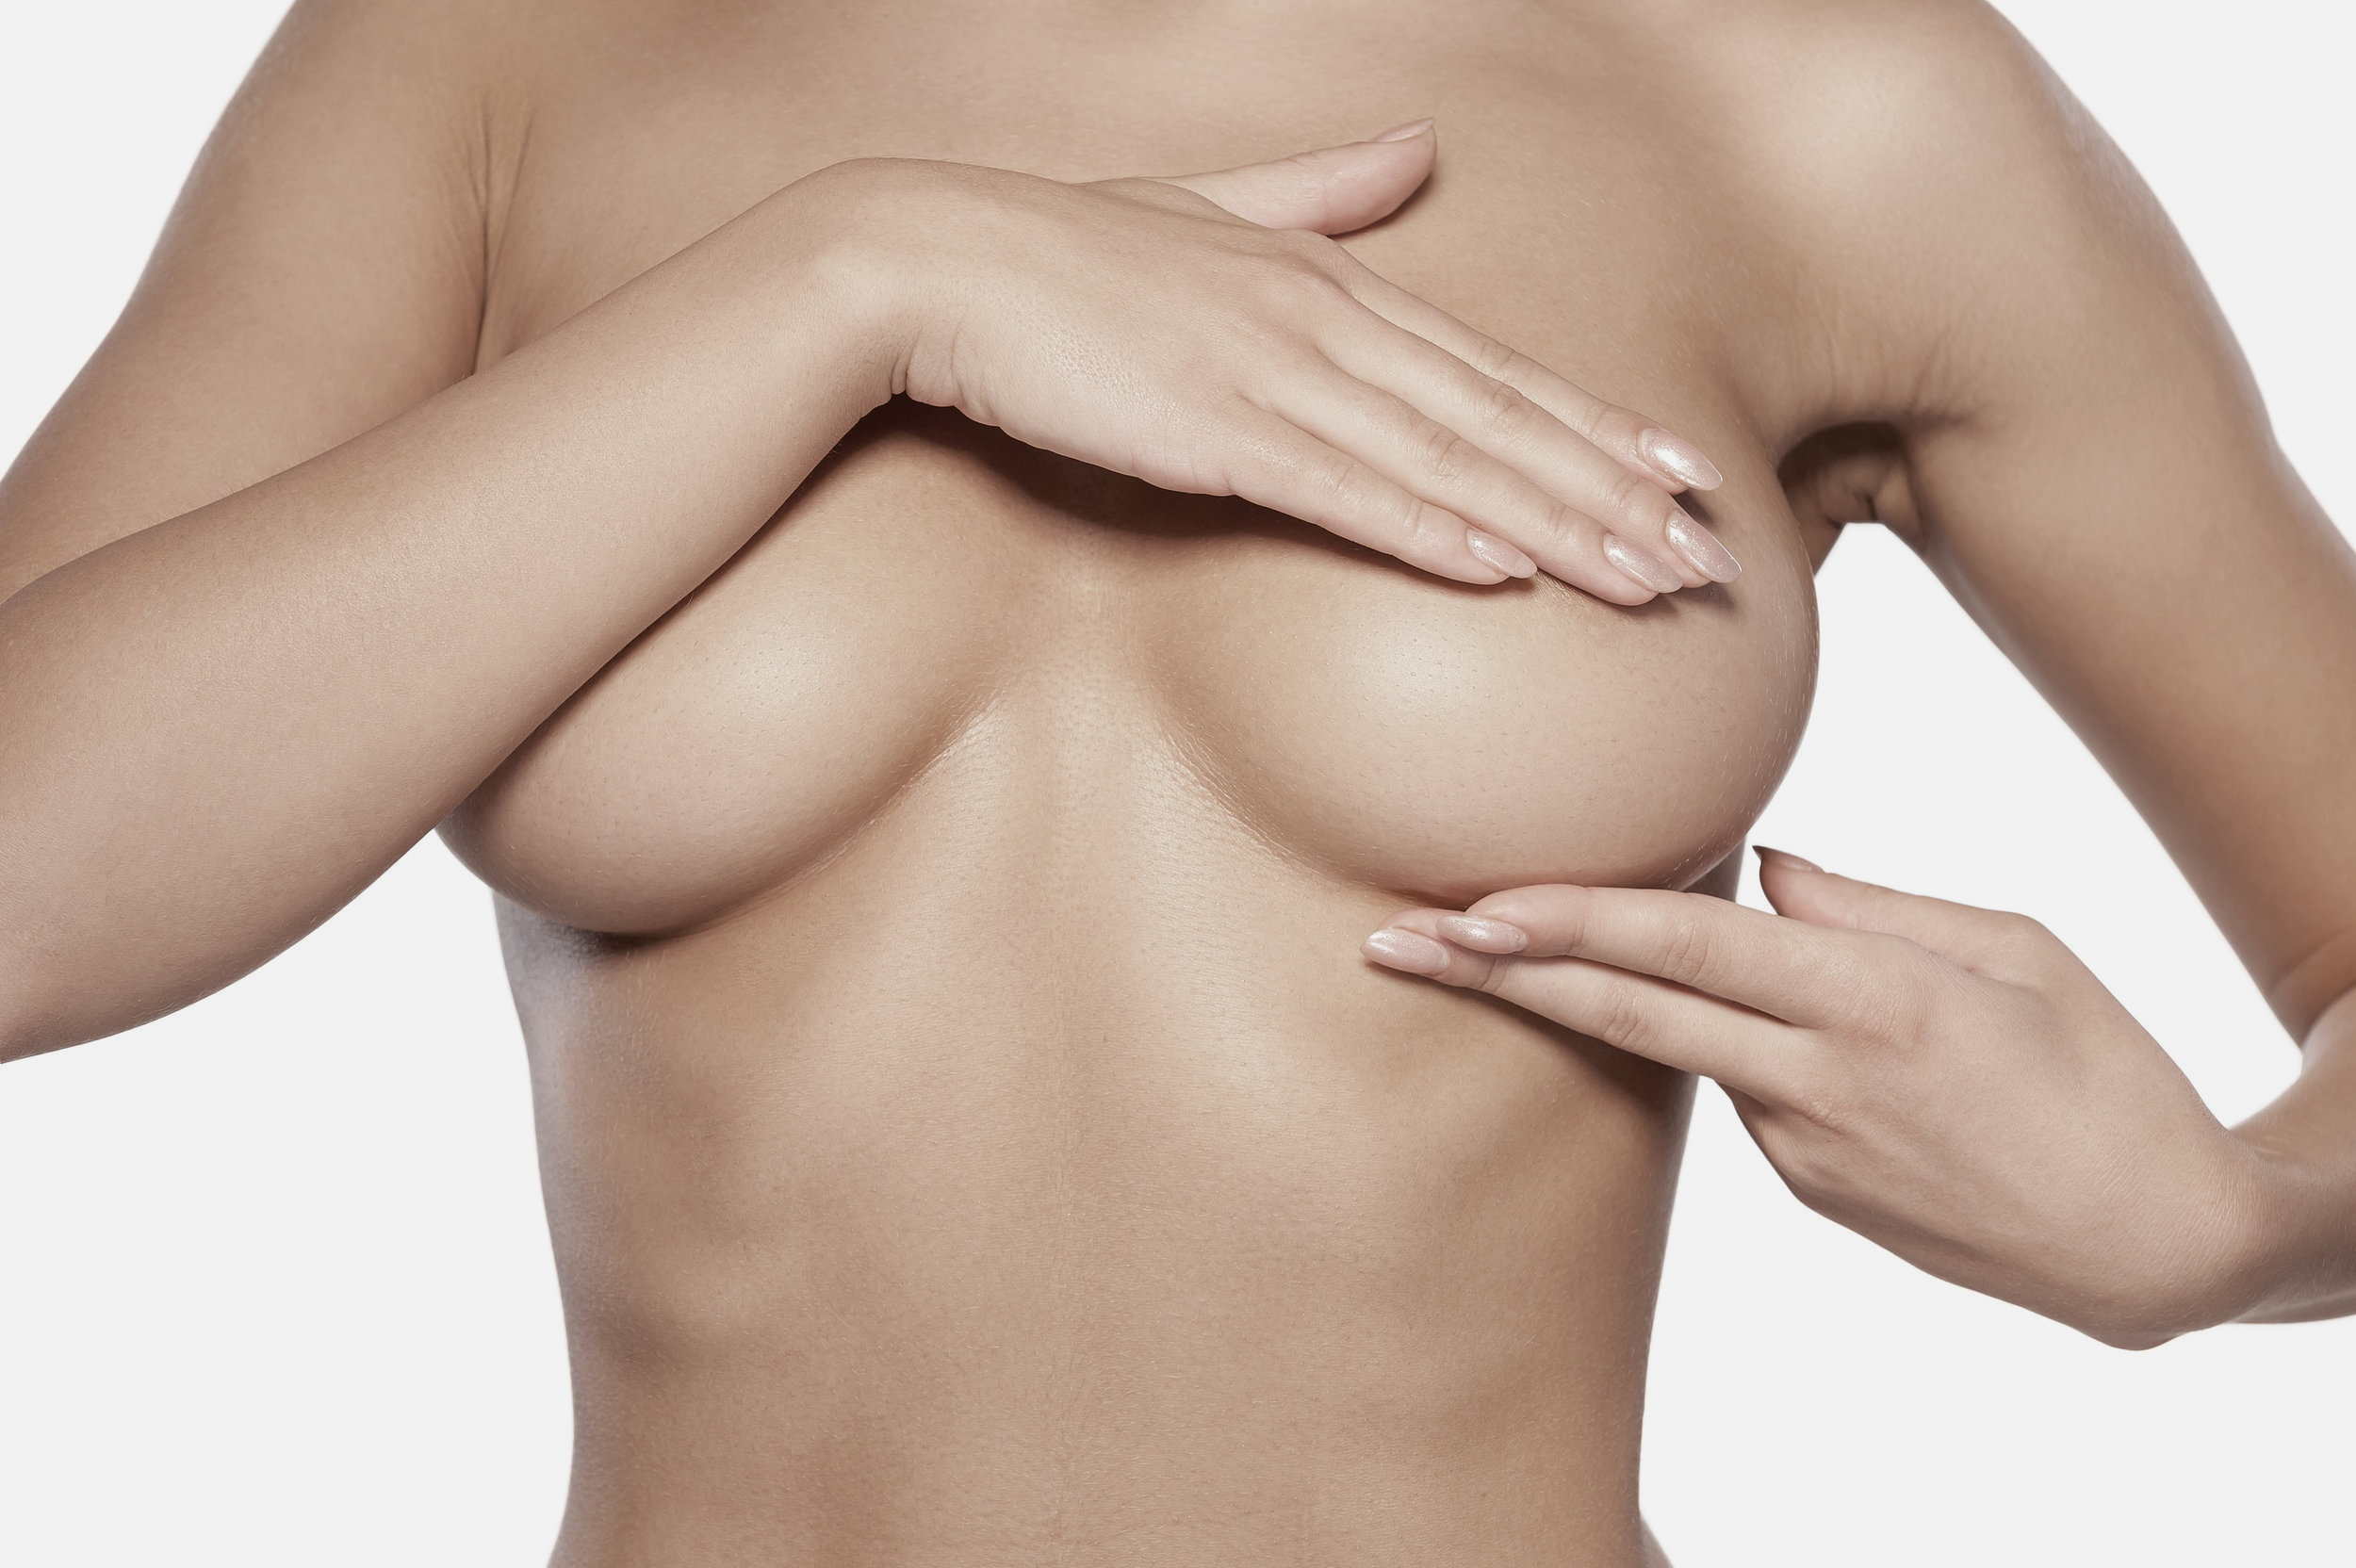 key treatment areas - Breast augmentation results in breast appearing larger, firmer and fuller. This can help women who are unhappy with the size and shape of the breasts following pregnancy, advancing age or weight loss. Implants can also be used to correct asymmetry or for reconstruction after breast cancer.